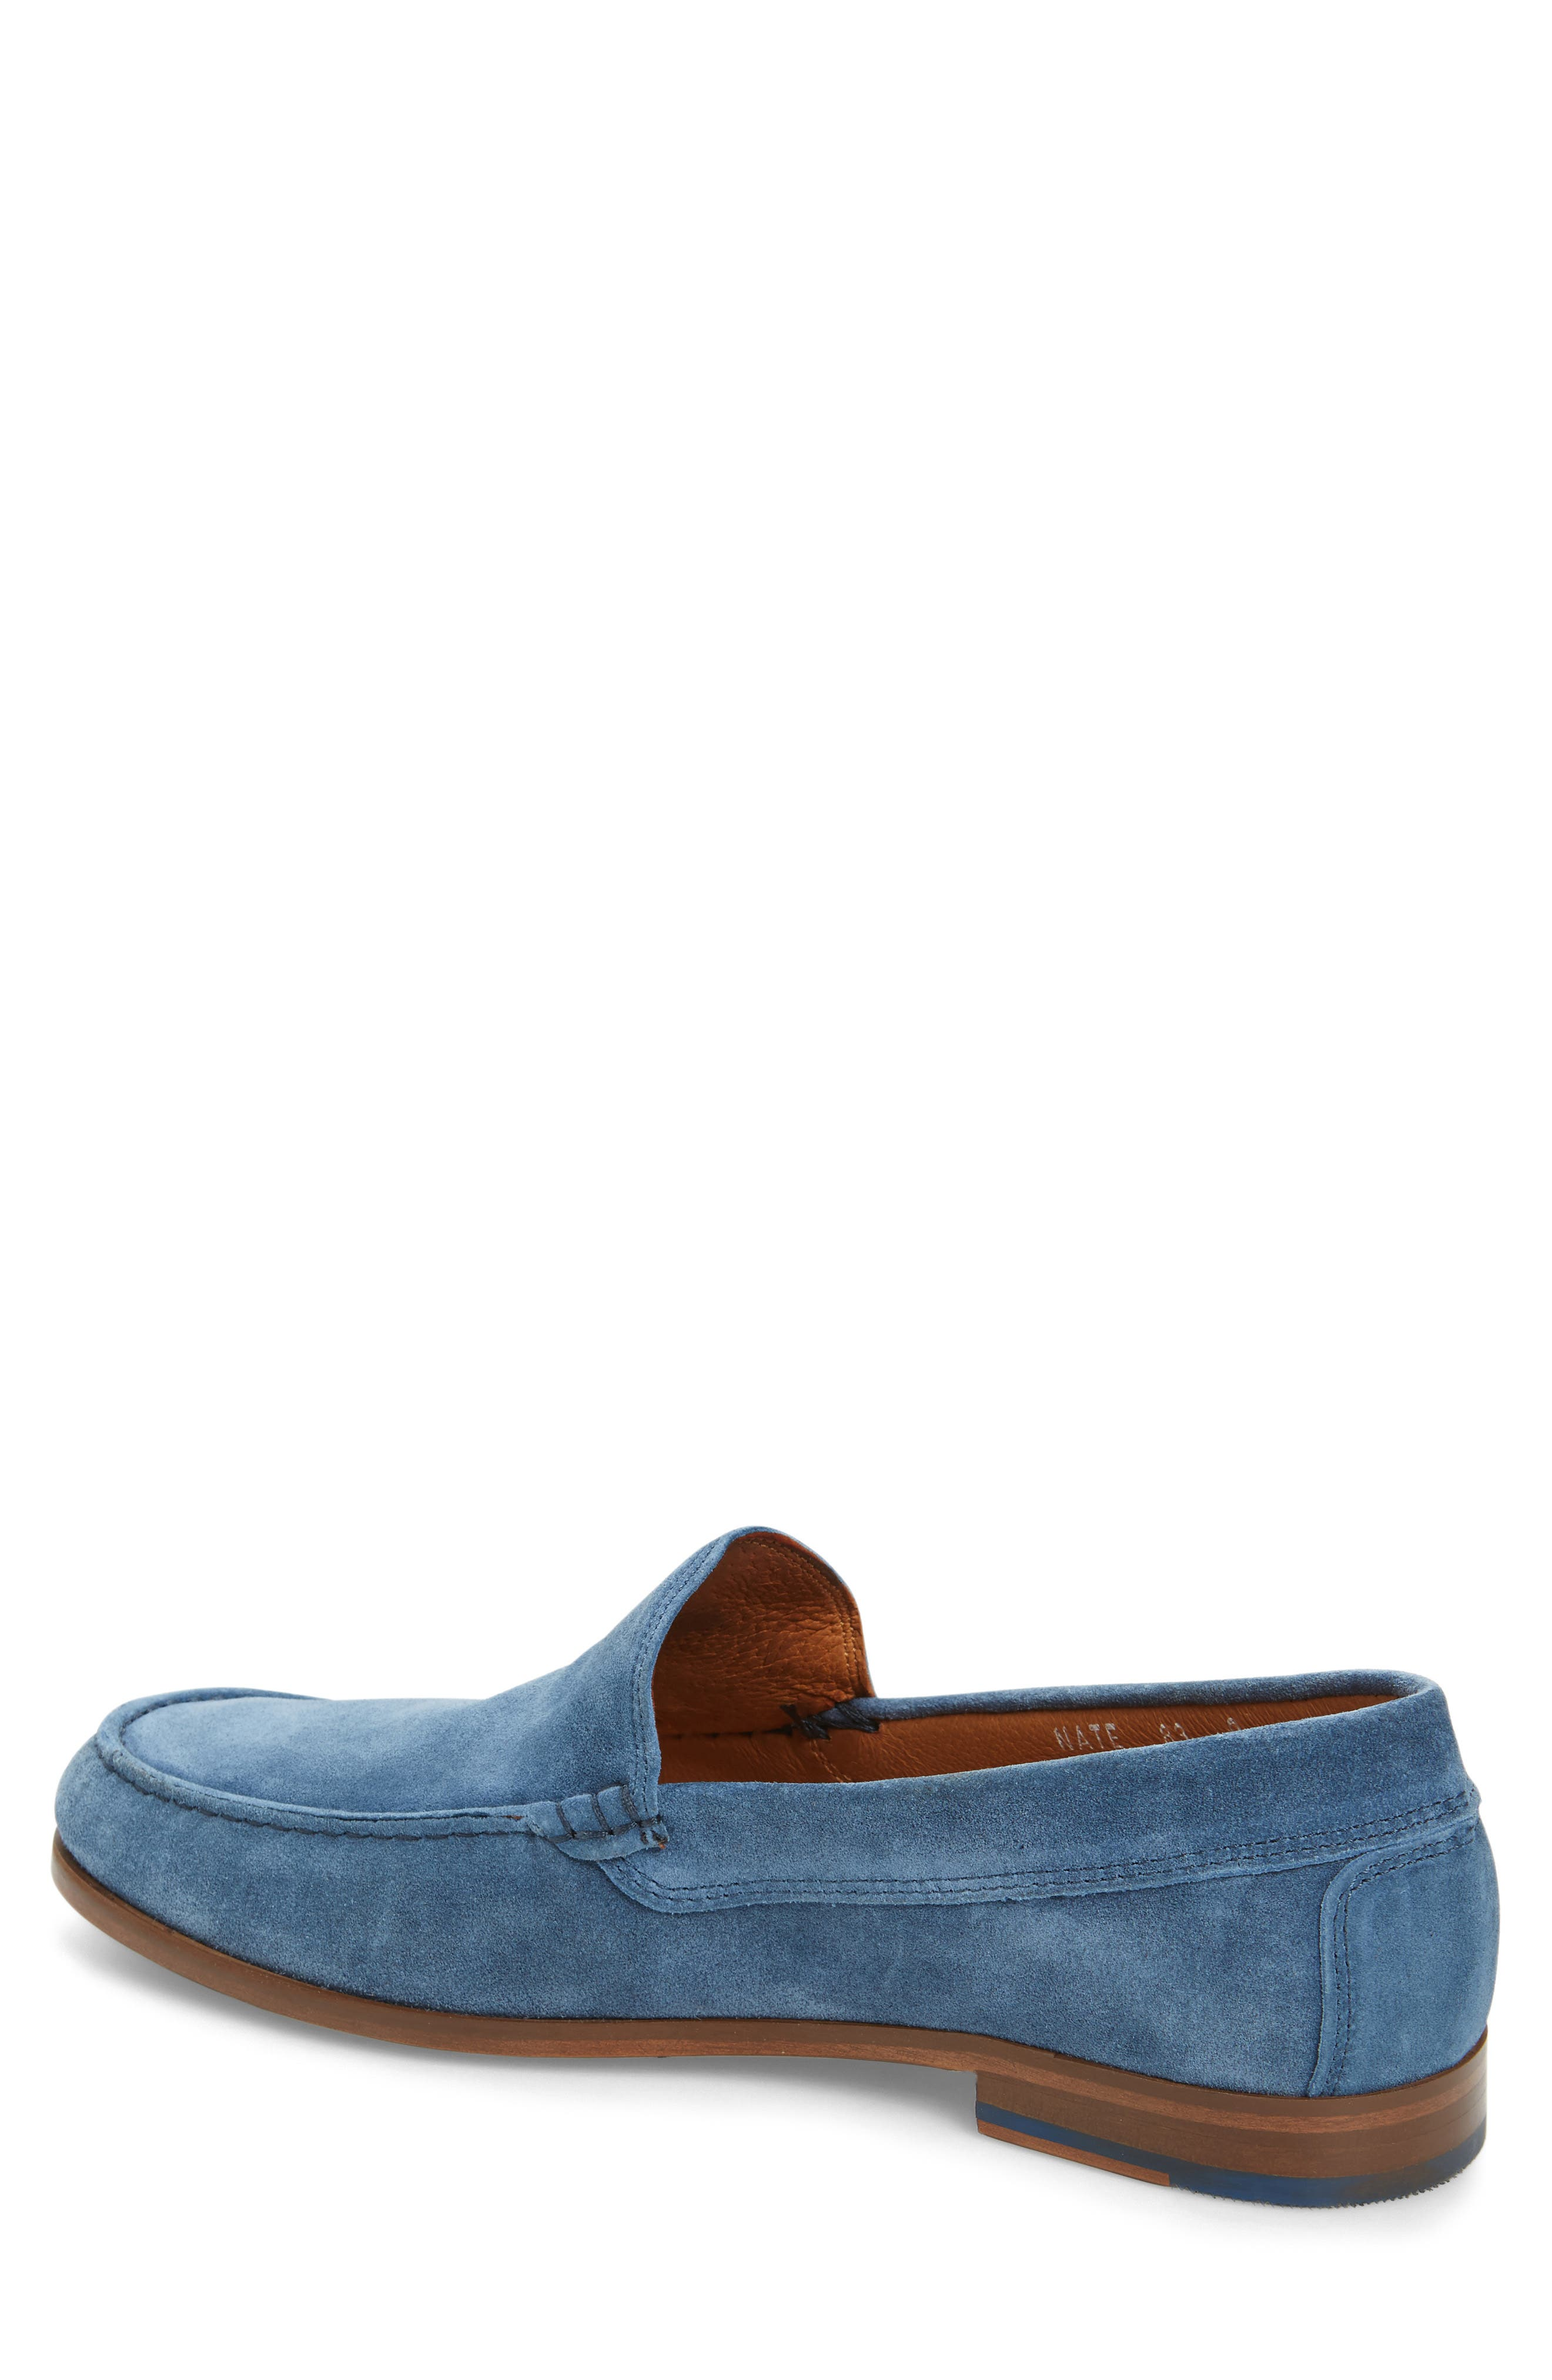 Donald J Pliner 'Nate' Loafer,                             Alternate thumbnail 9, color,